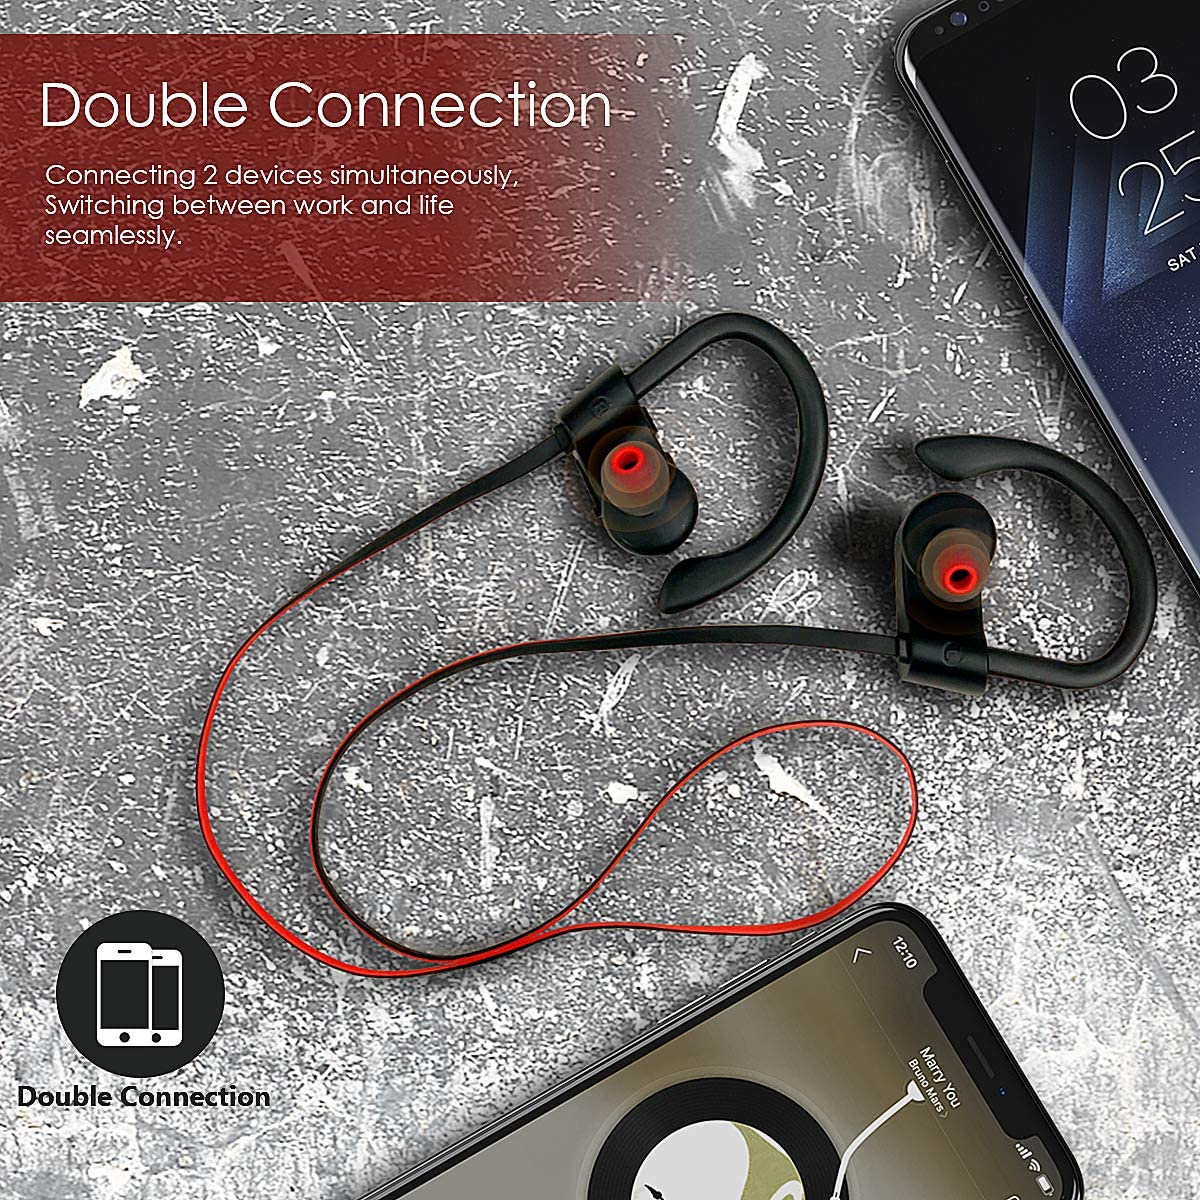 Bluetooth Headphones, Wireless Headphones Waterproof IPX7 Headsets for Workout, 9 Hours Playing Time HD Stereo Earbuds, Sports Earphones with Microphone, Black